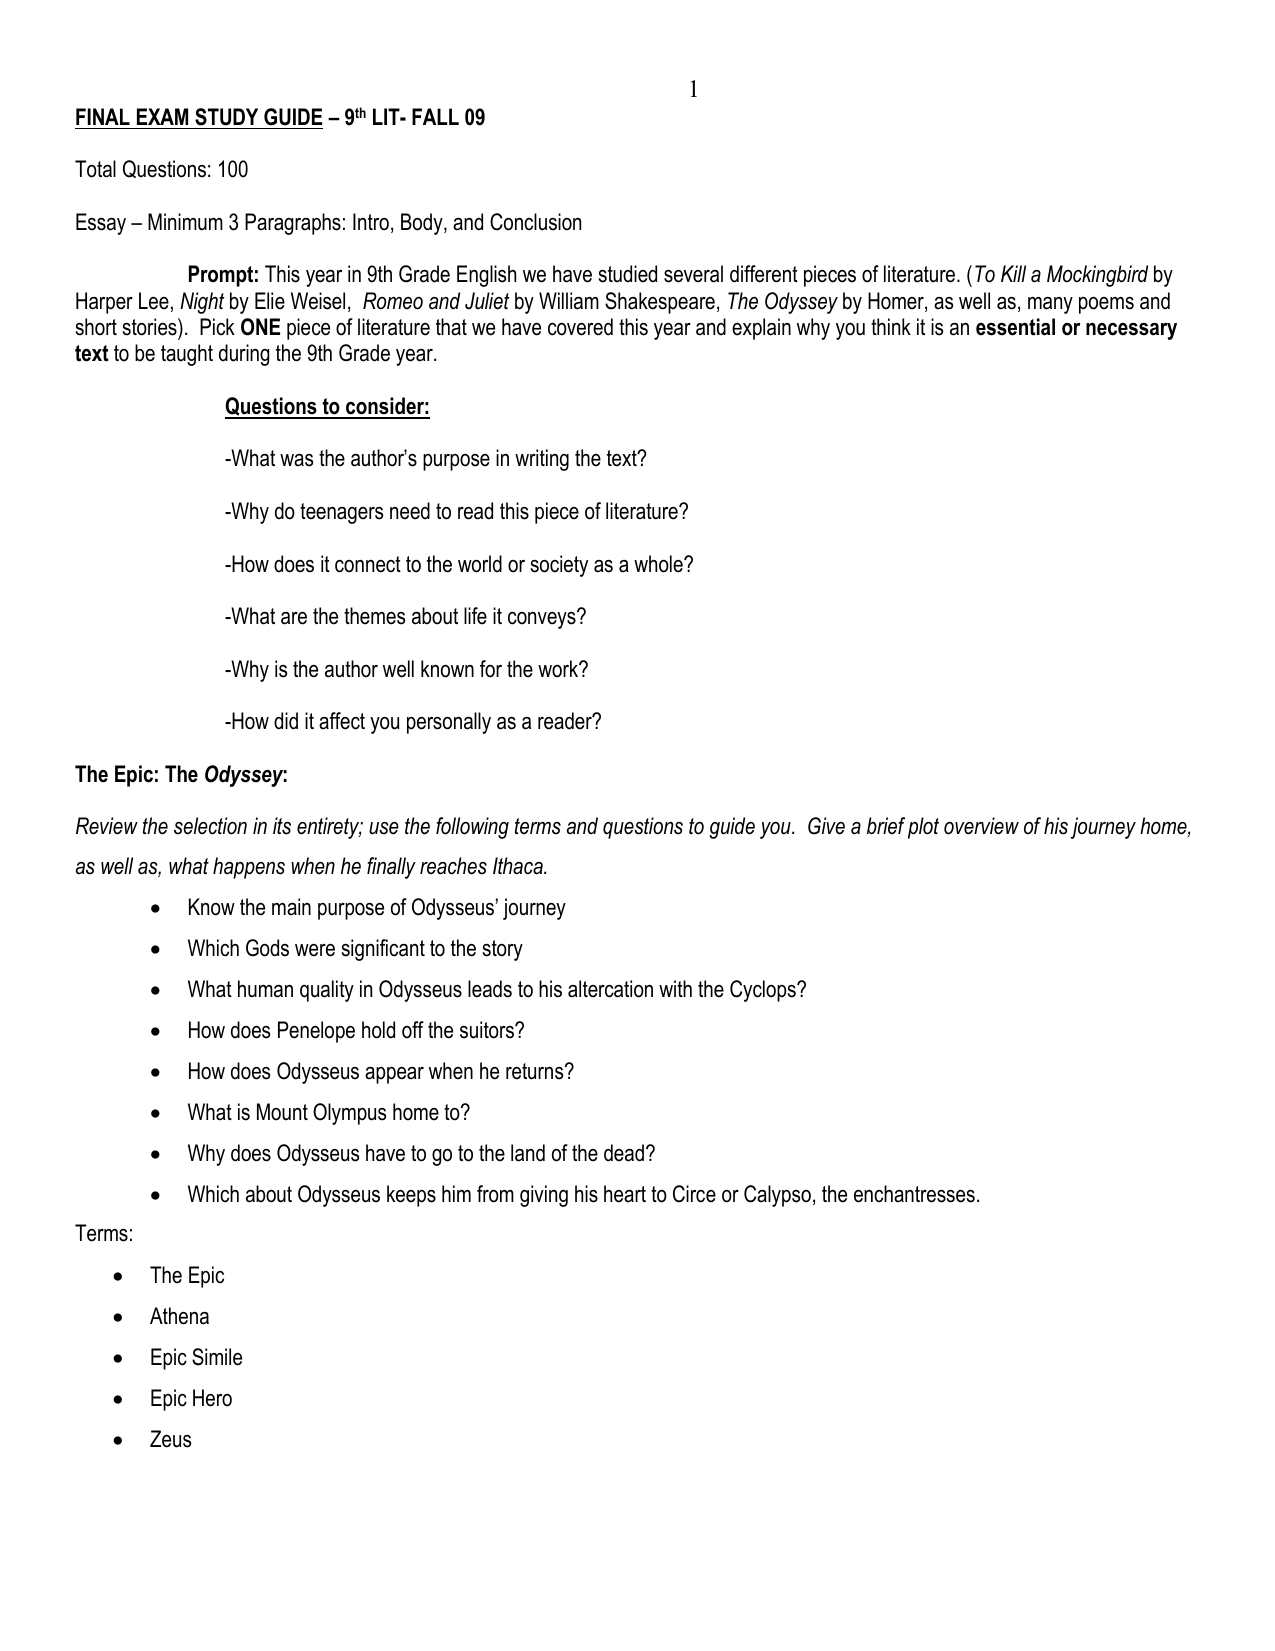 FINAL EXAM STUDY GUIDE – 9TH GRADE LITERATURE AND